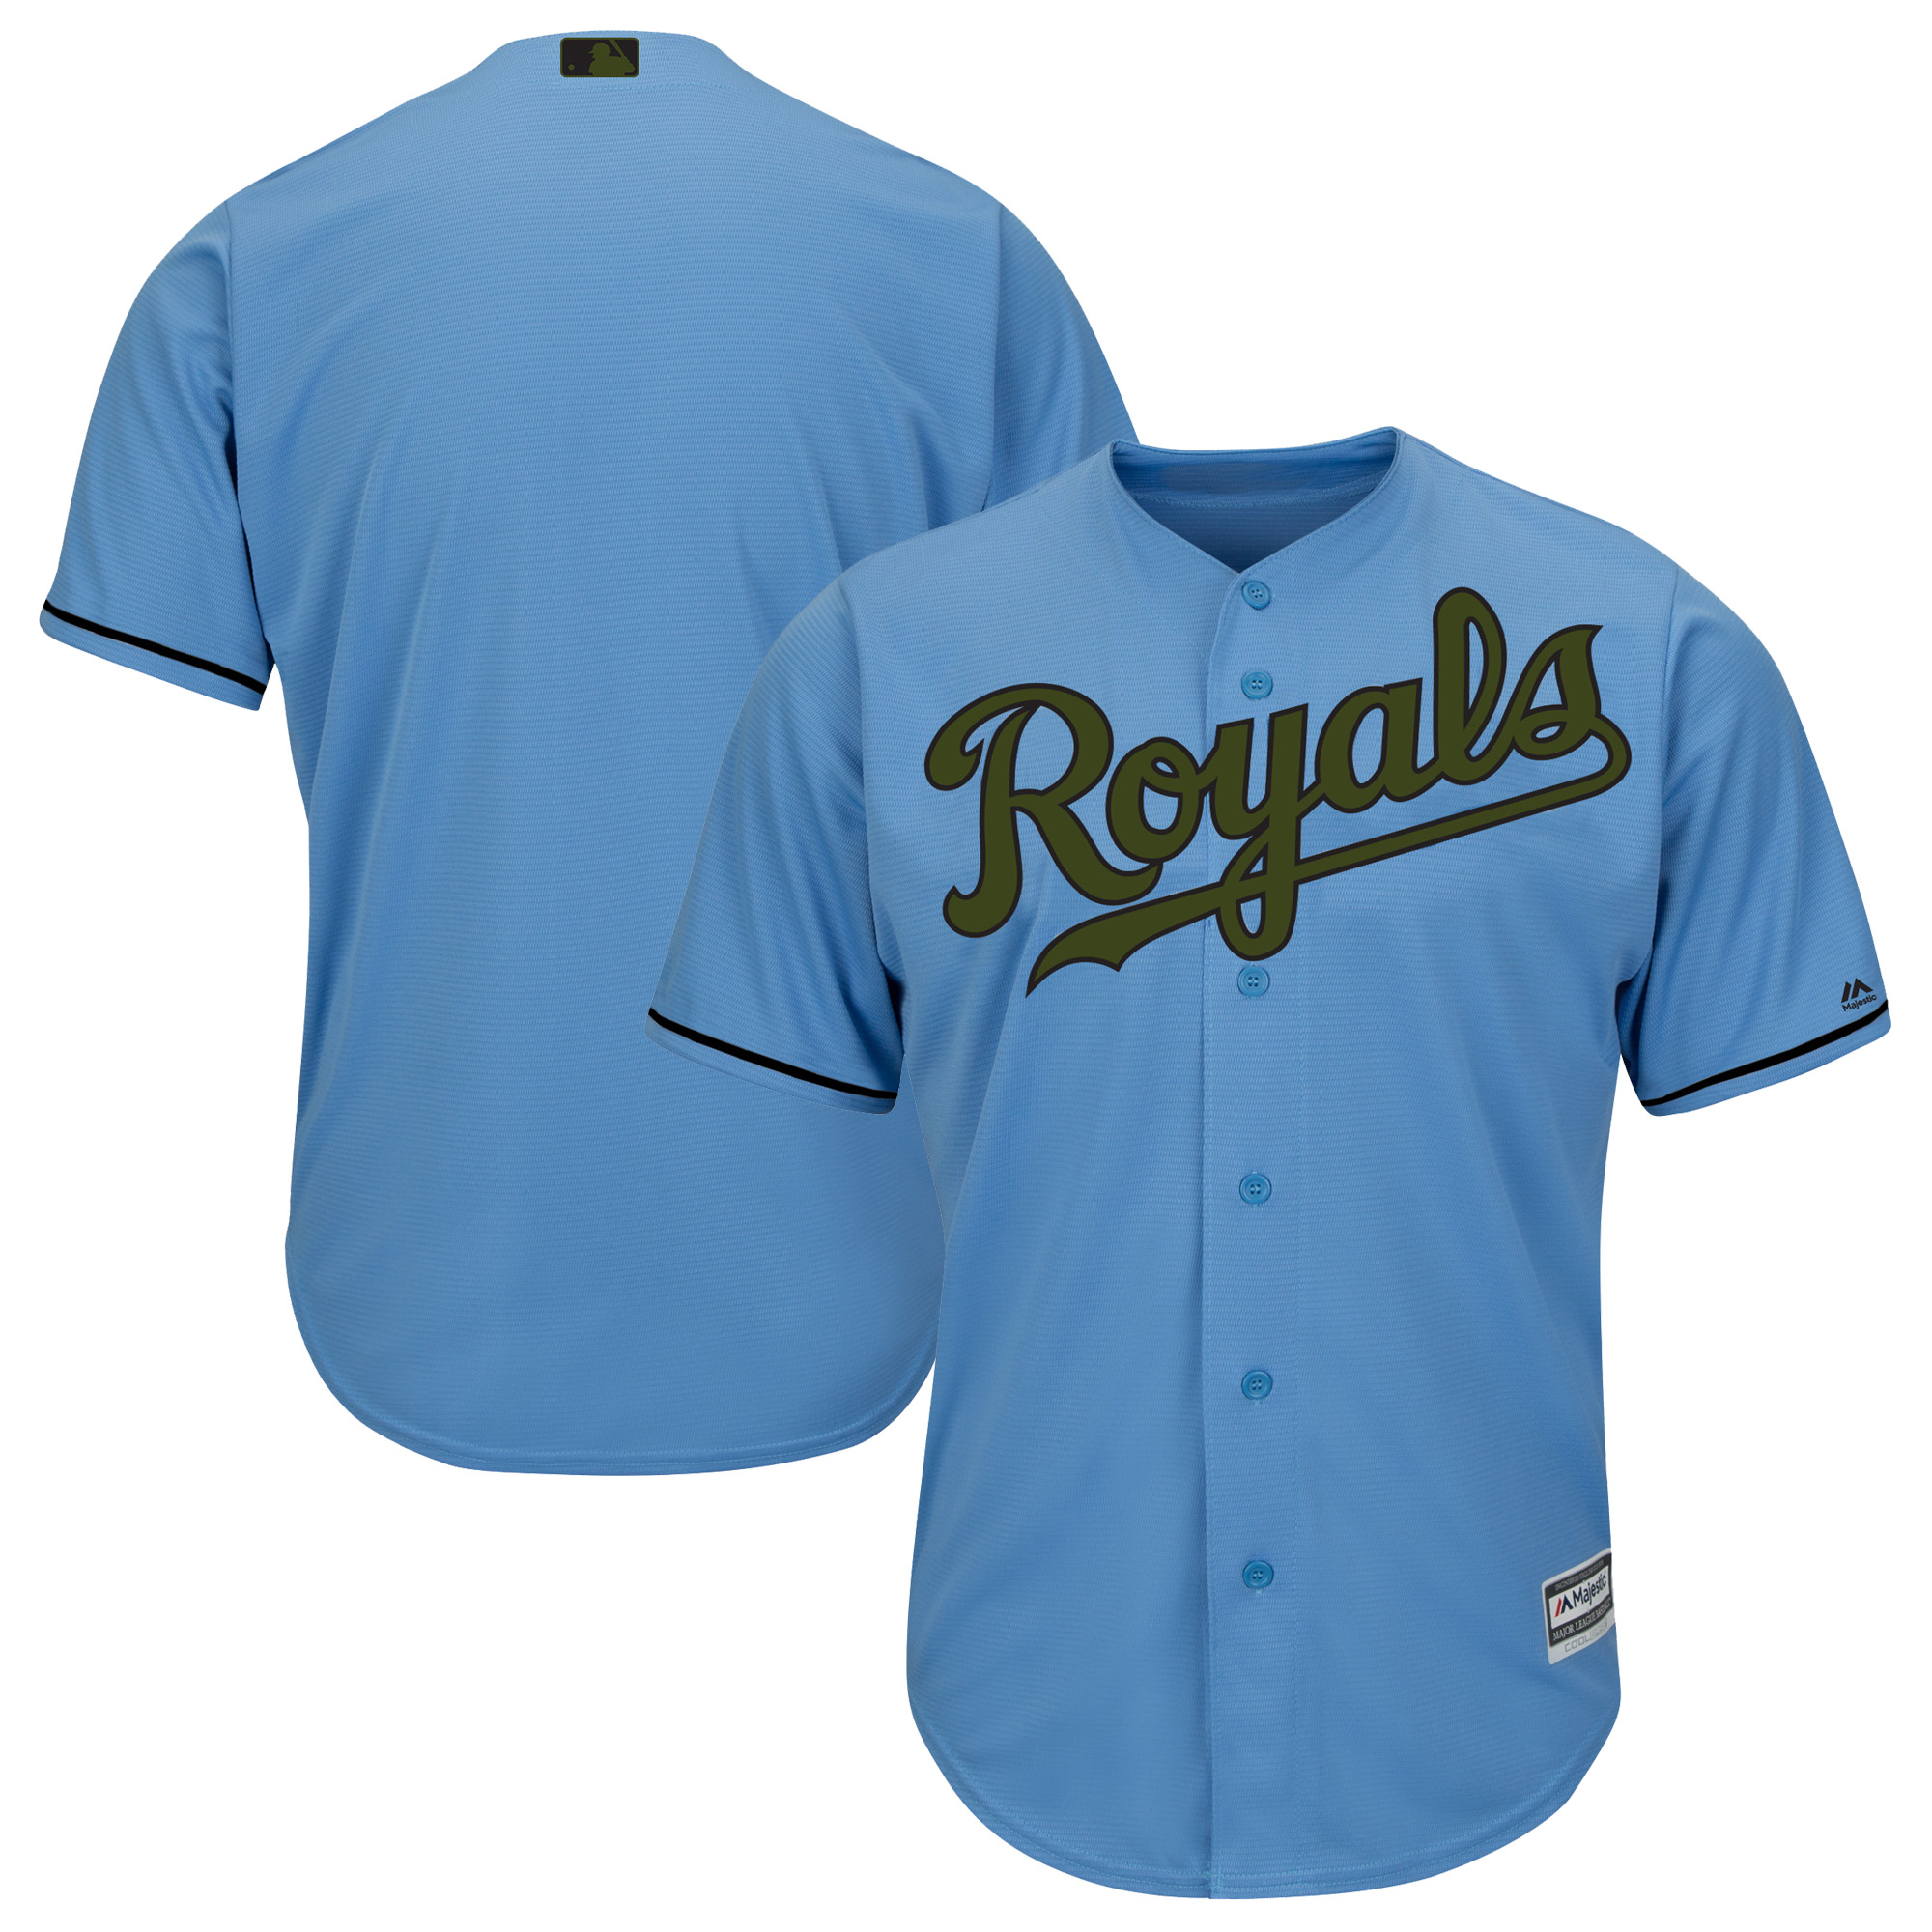 Kansas City Royals Majestic 2018 Memorial Day Cool Base Team Jersey - Light Blue